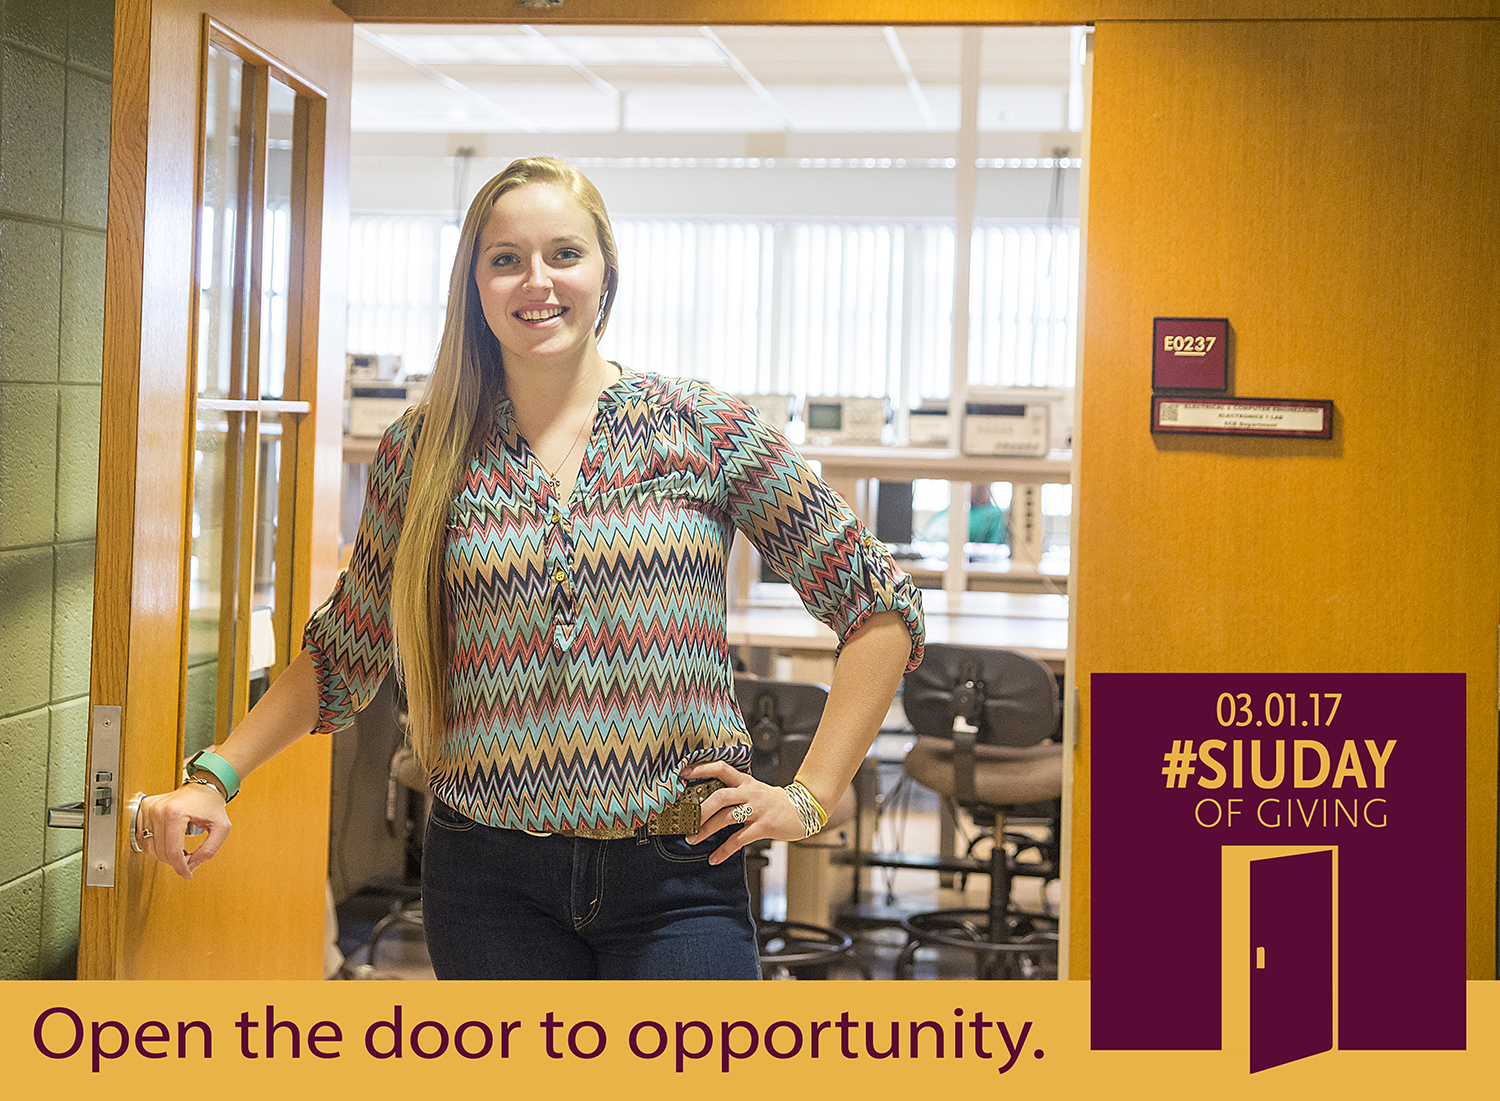 SIU Day of Giving – Open the door to opportunity at SIU College of Engineering